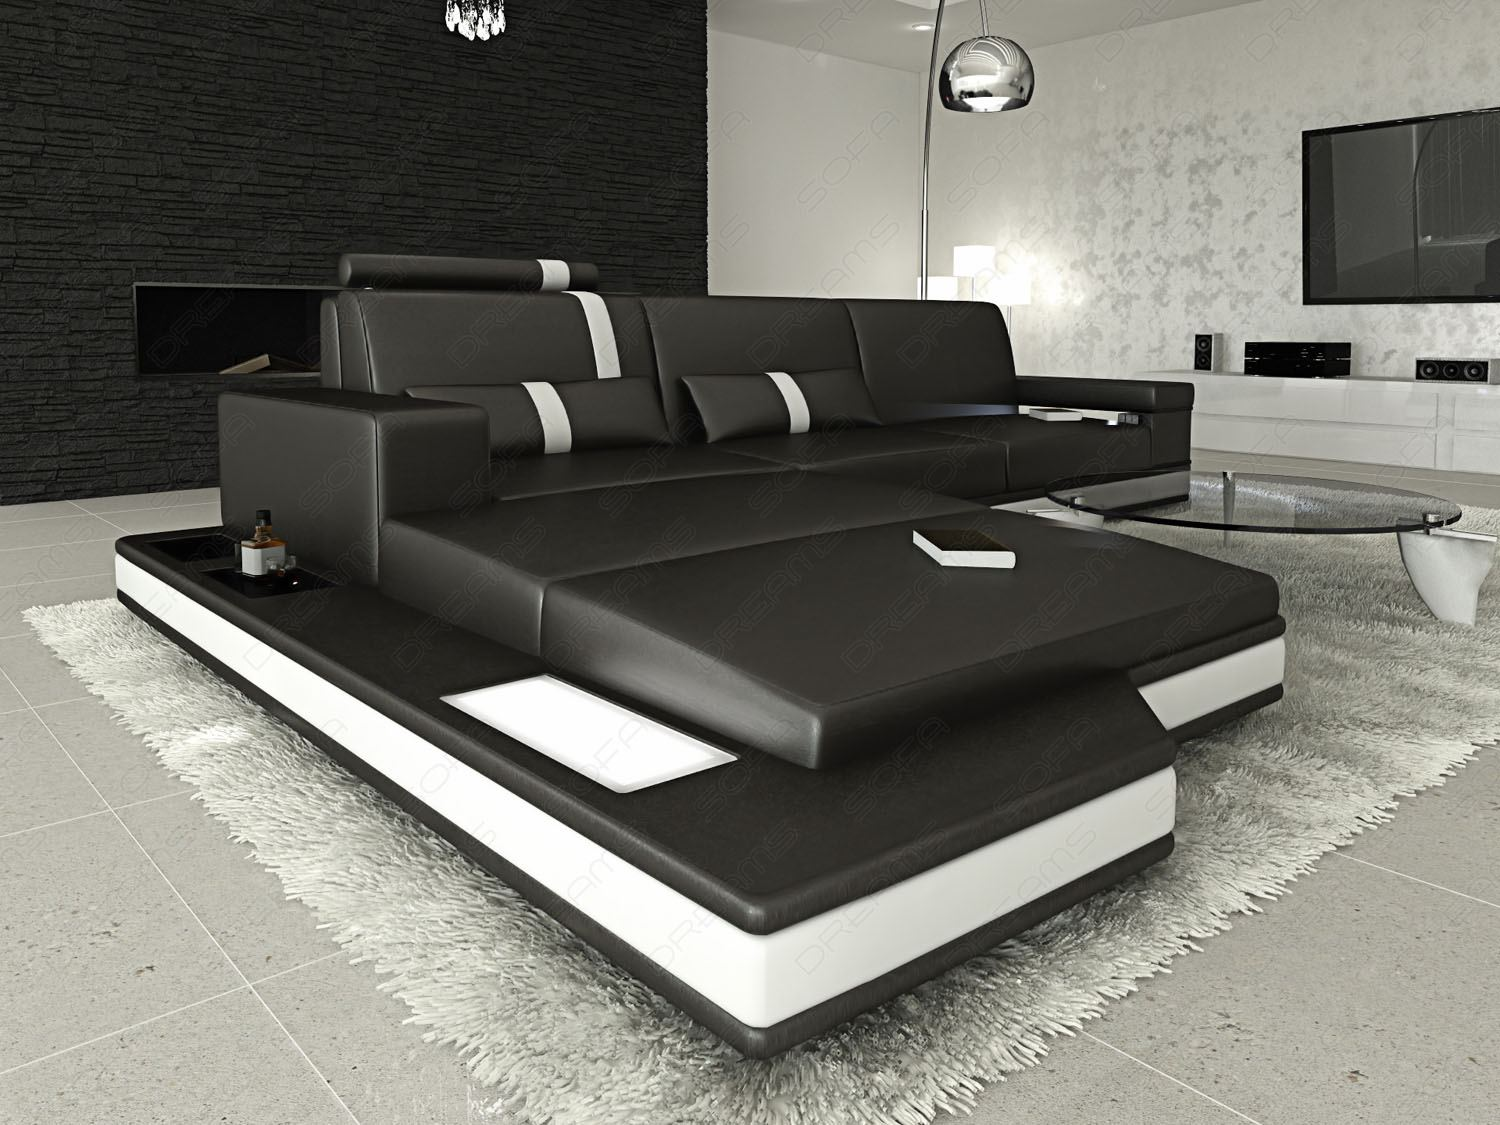 leather sofa messana l shape black white light. Black Bedroom Furniture Sets. Home Design Ideas